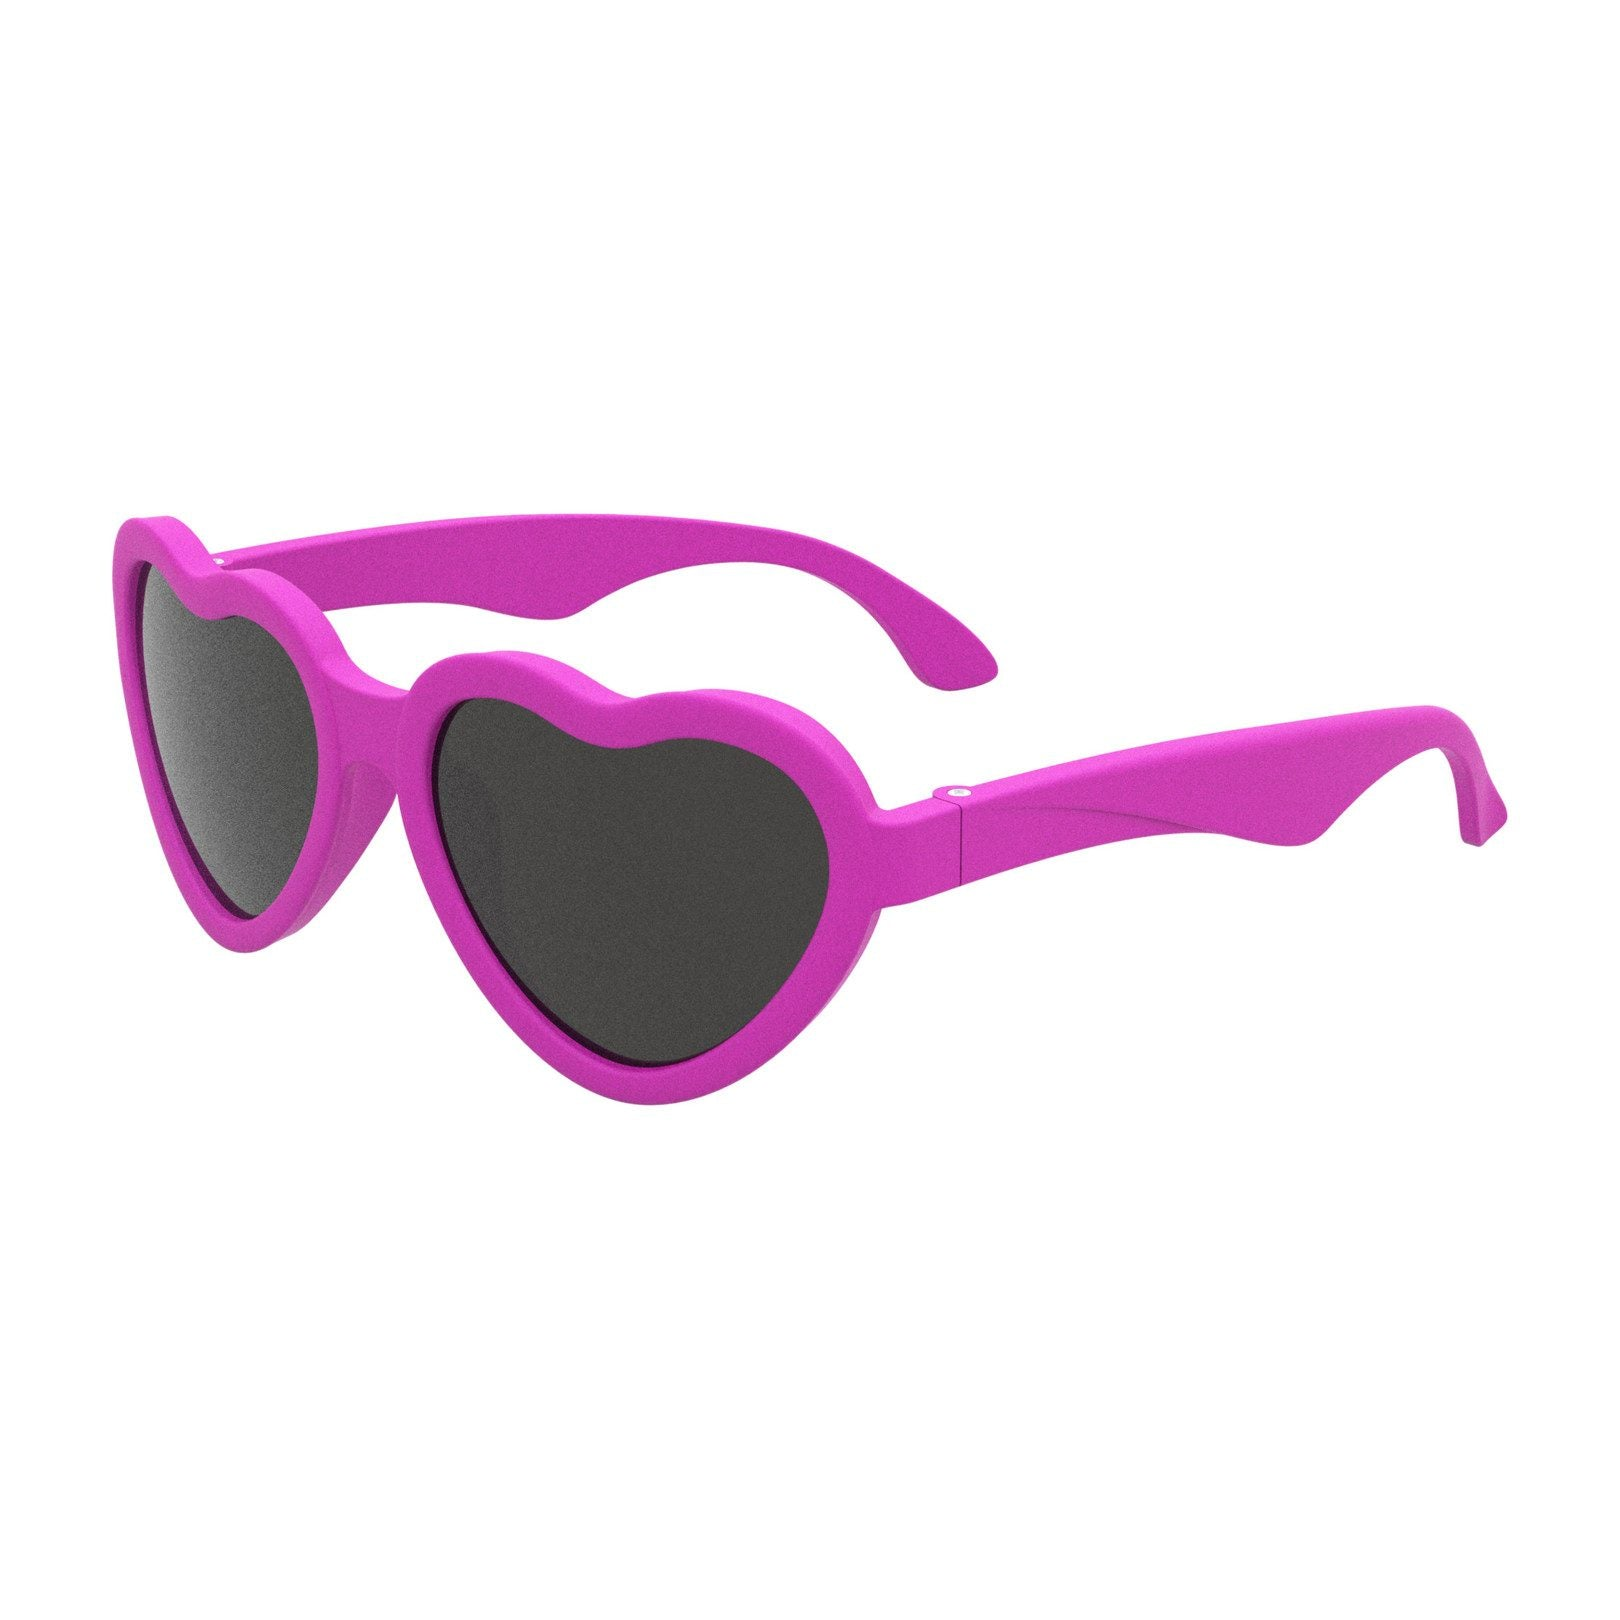 Heartbreaker Heart Shaped Sunglasses - Little Owly